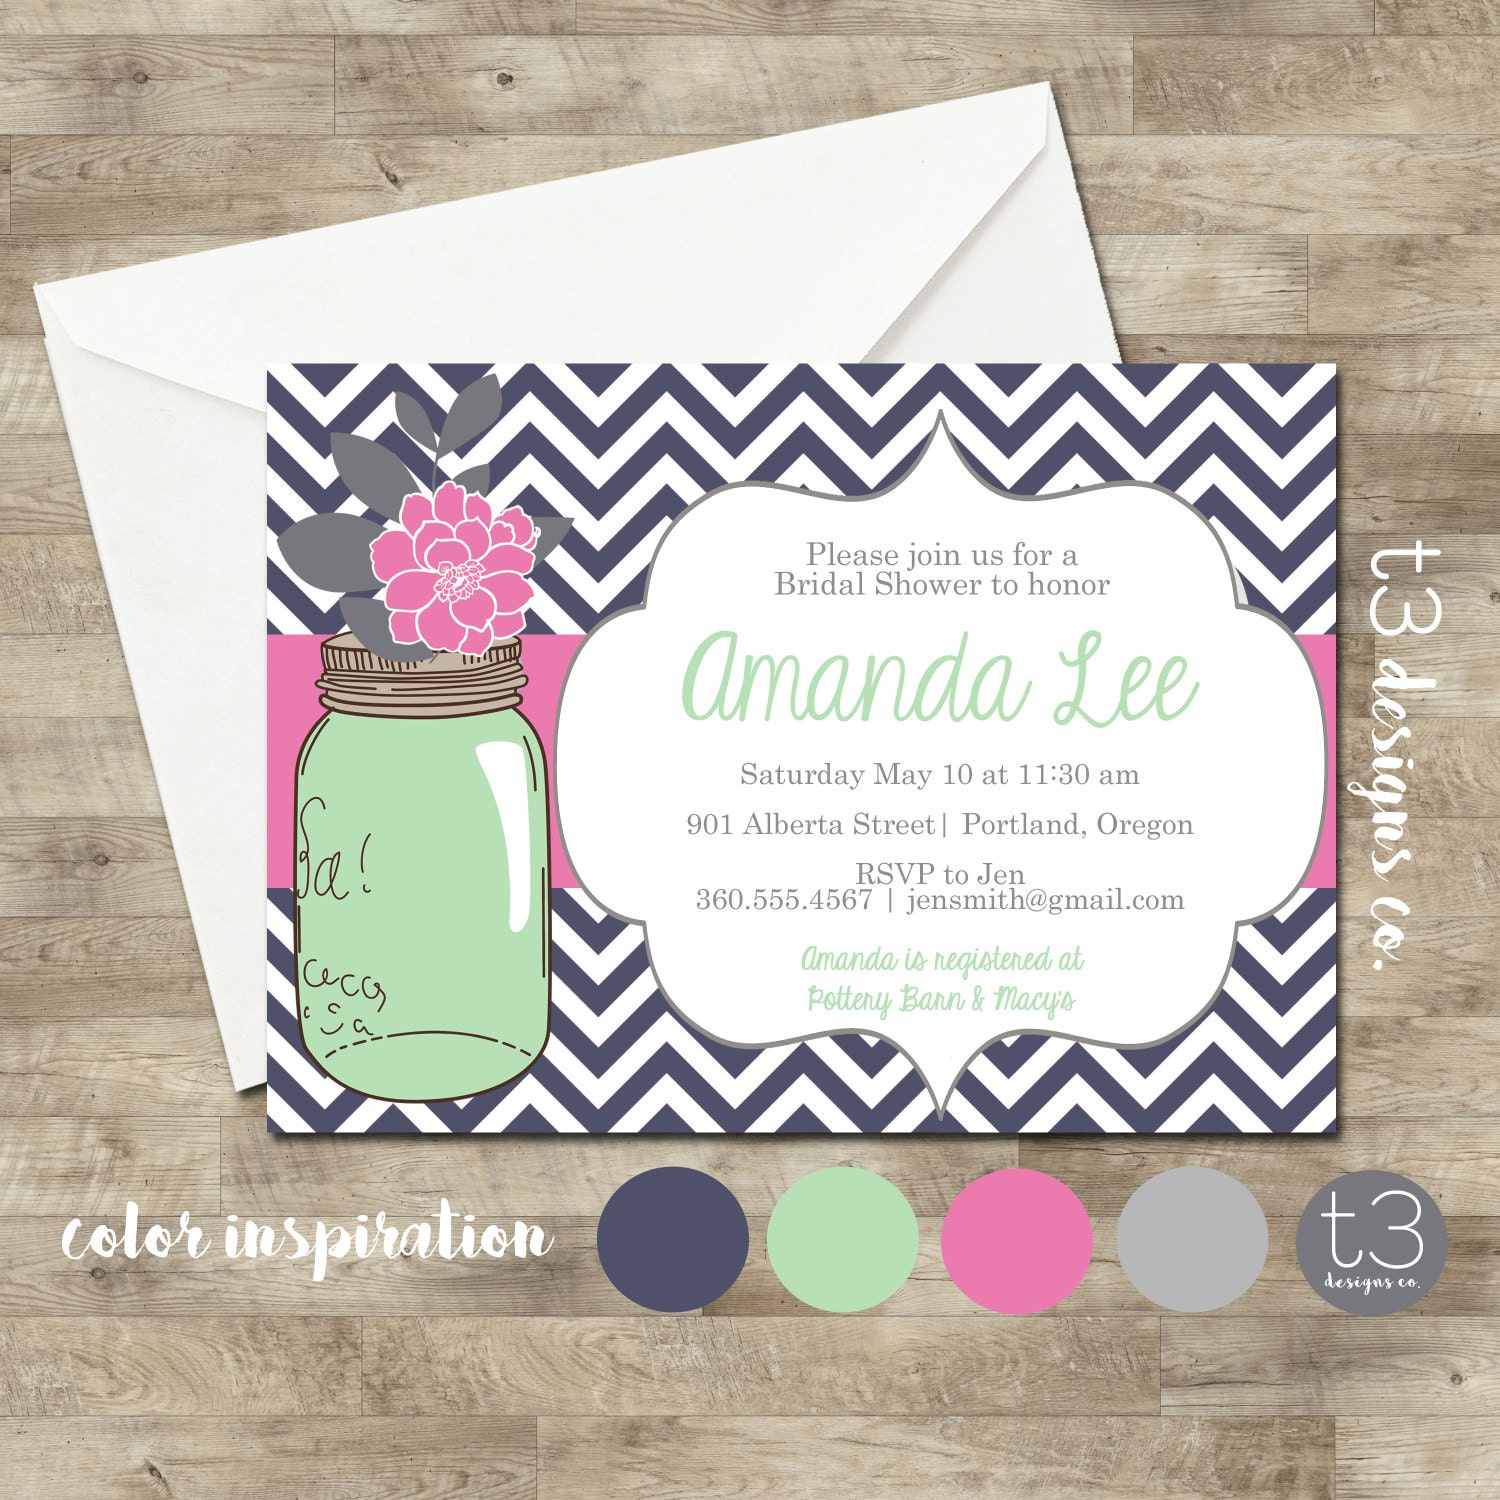 mason jar invitation bridal shower invitation wedding shower mason jars chalkboard invite invitation chevron peonies invite